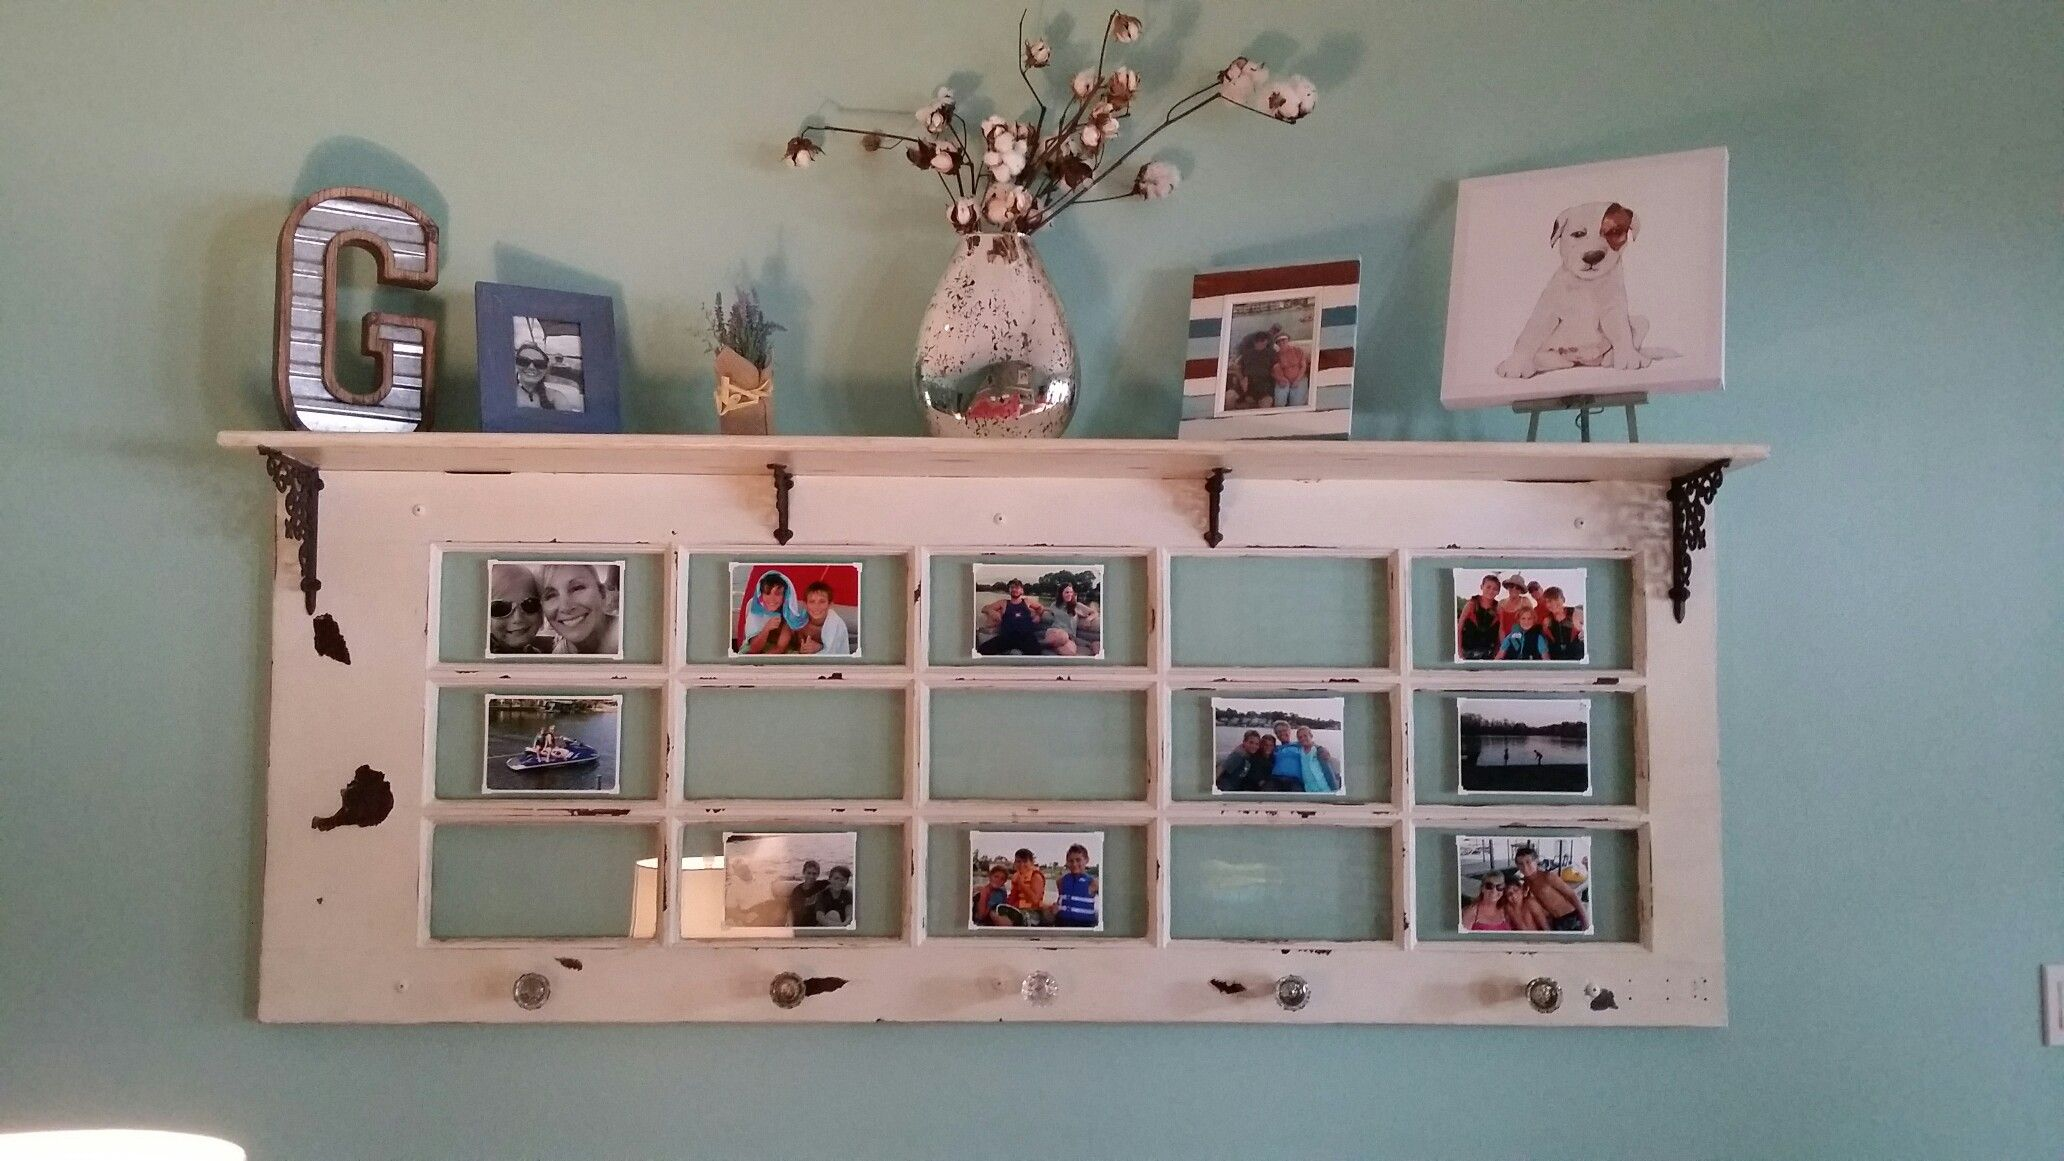 Old French Doors Turned Into Frames For Memories Decorating Ideas Hair Beauty Old French Doors French Doors